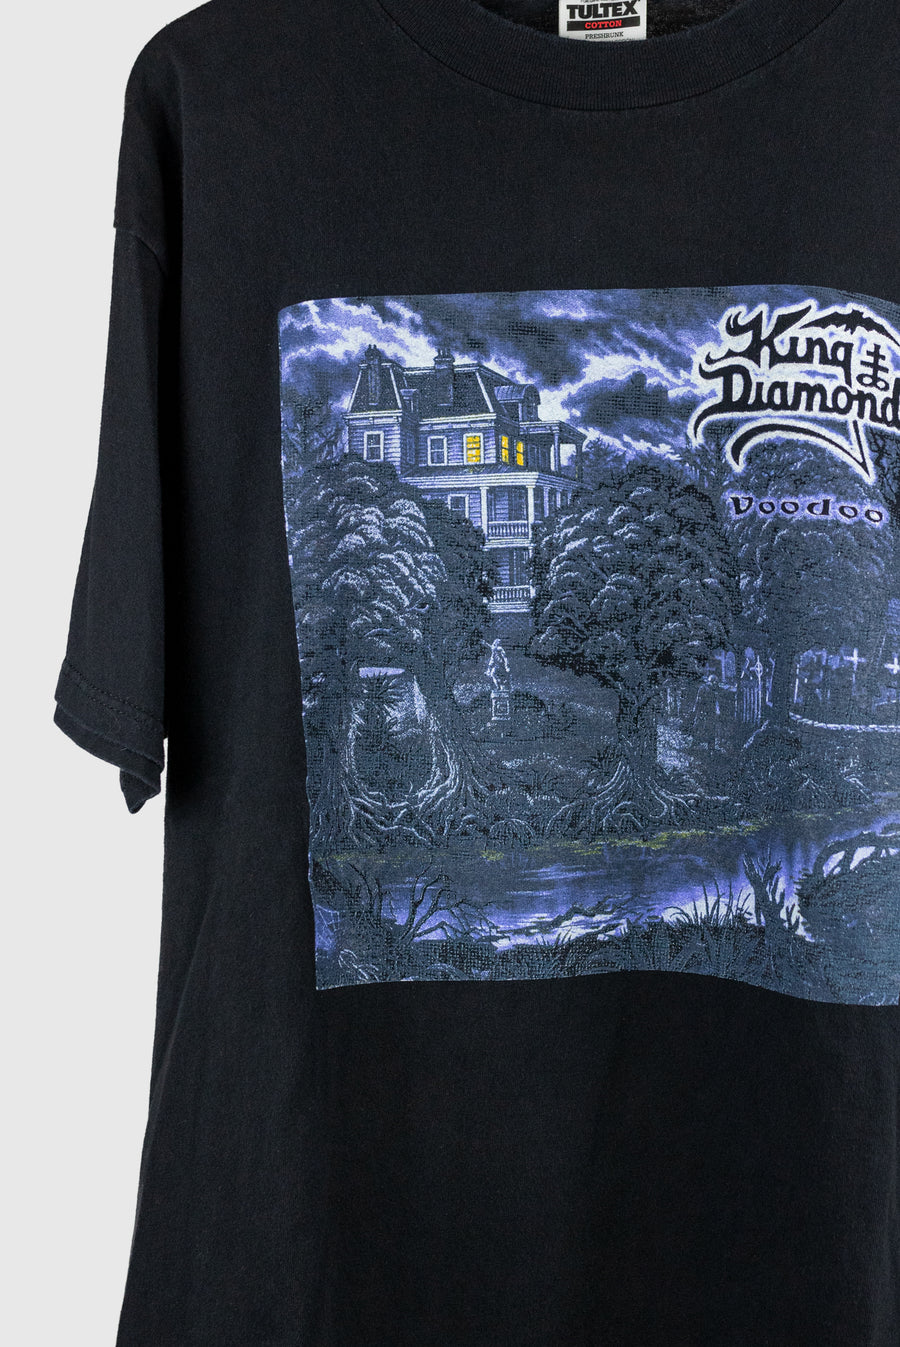 1998 King Diamond Vintage Tour Tee